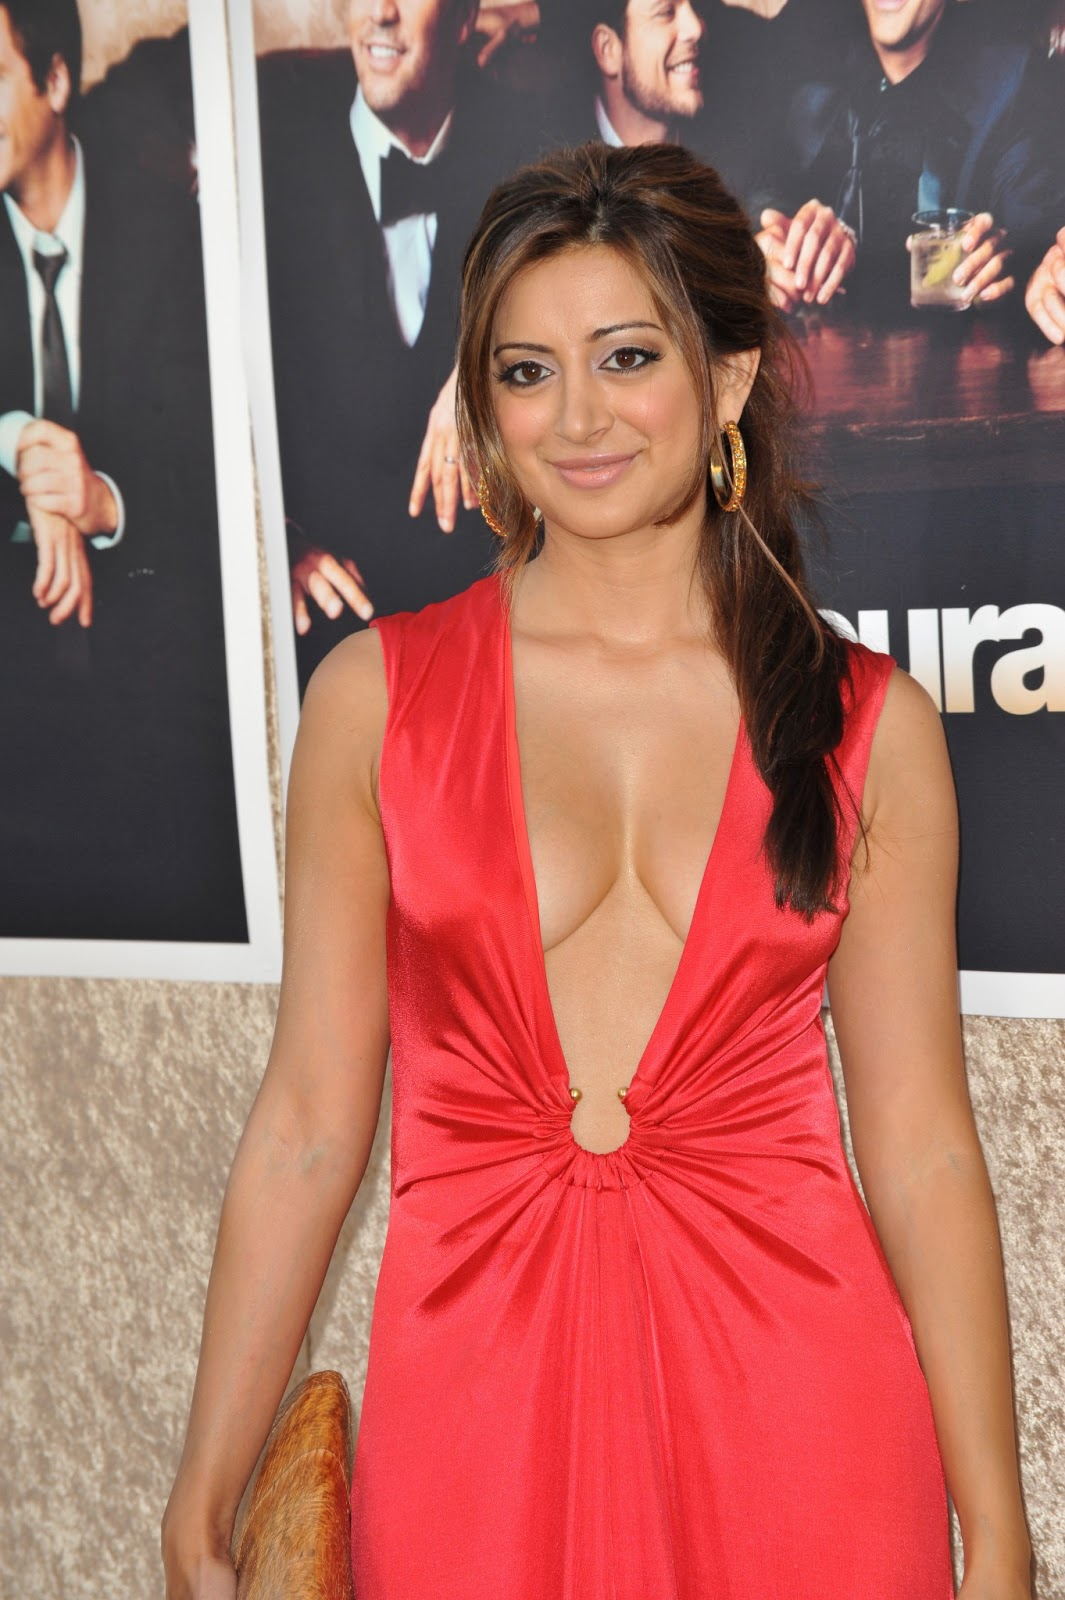 , Noureen Dewulf Wallpapers, Noureen Dewulf Images, Noureen Dewulf